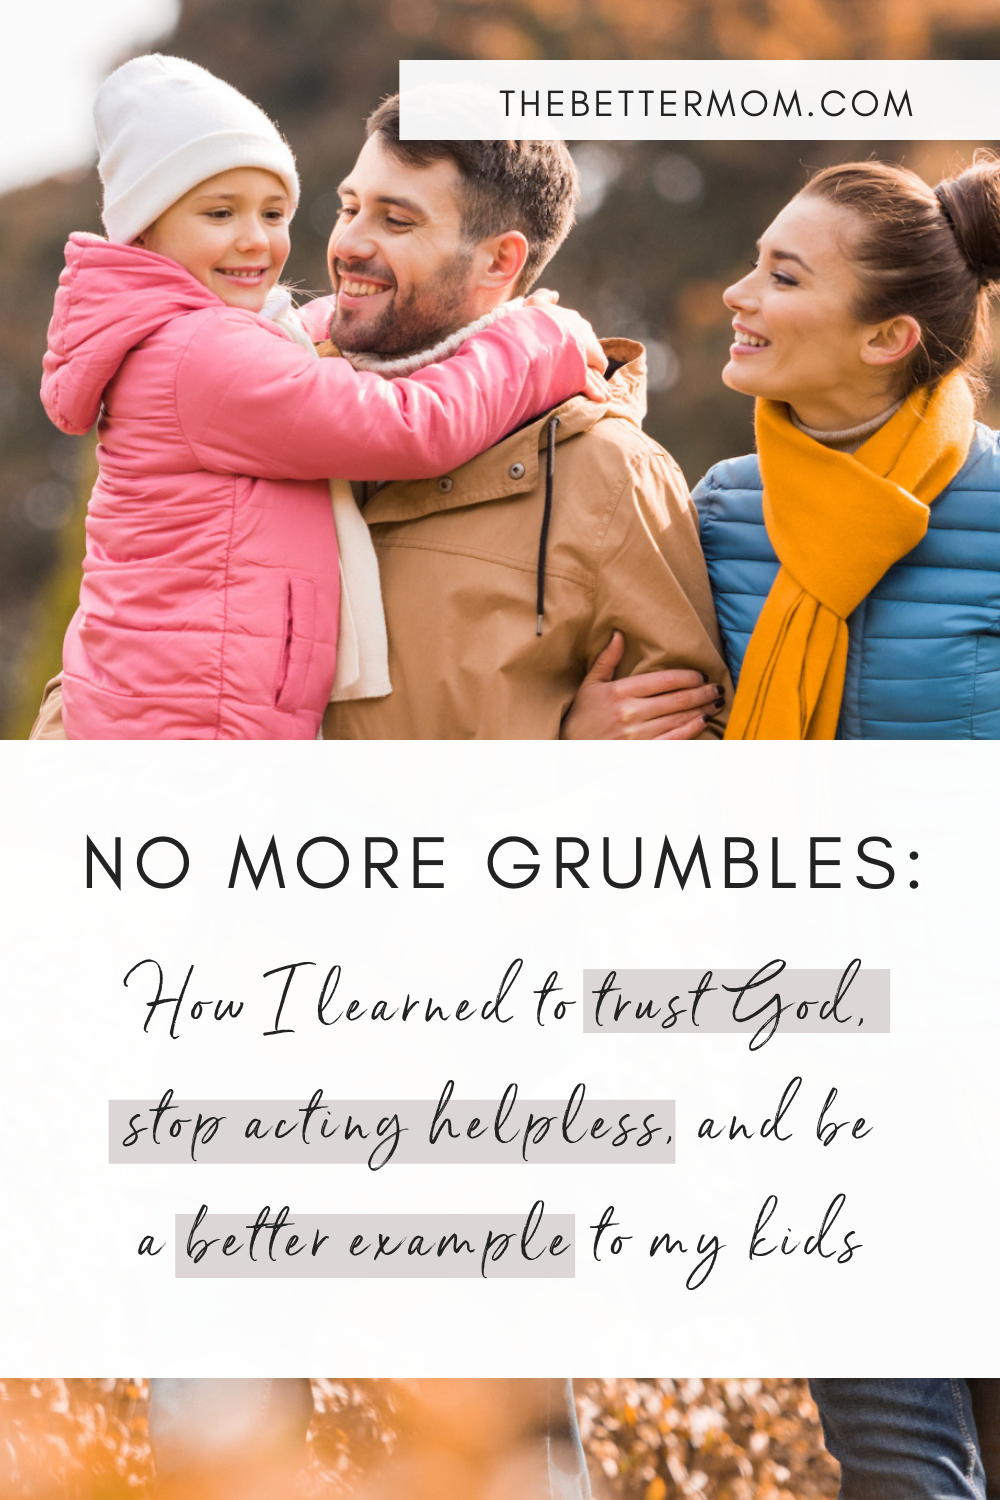 Do you struggle with complaining? Do you get bent out of shape when things don't go according to plan? Learn how to embrace peace and get rid of grumbling for good!